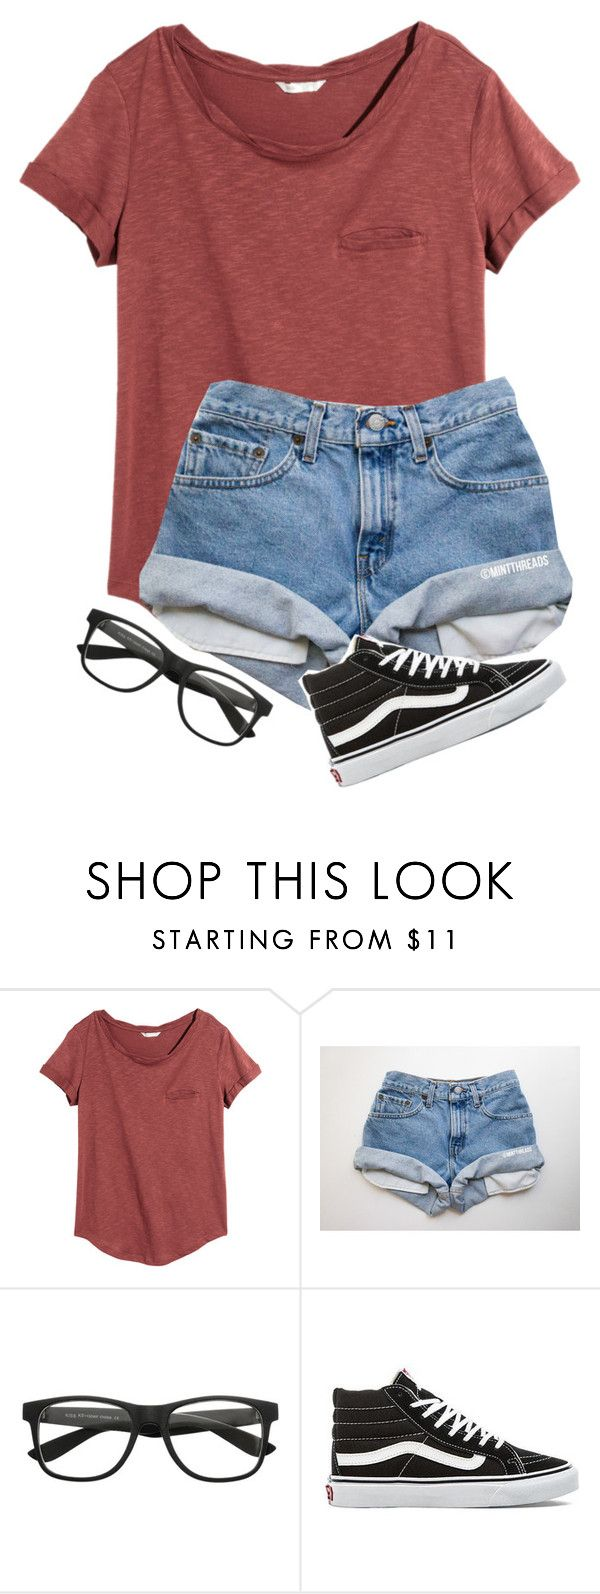 """I got new glasses today! They actually kinda look like the ones in this set "" by one-of-those-nights ❤ liked on Polyvore featuring H&M and Vans"